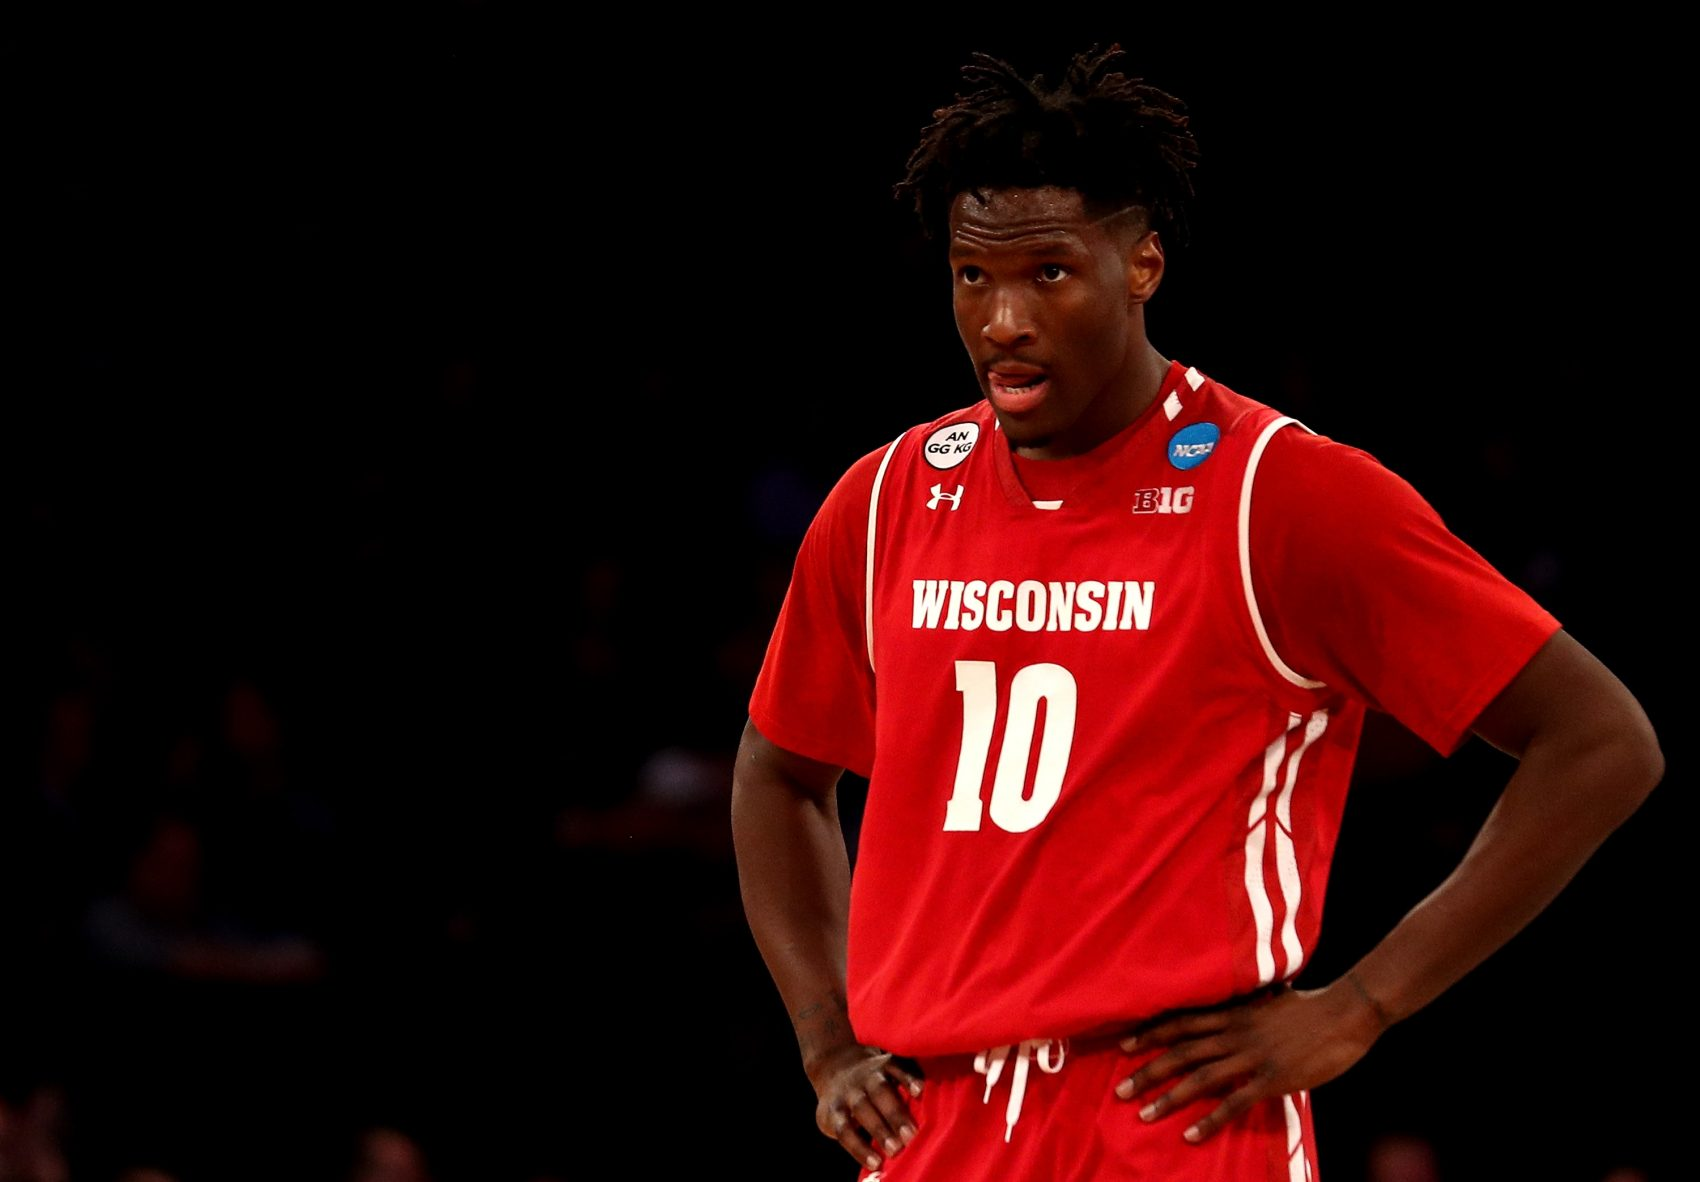 Basketball Players: How Two Wisconsin Basketball Players Decided To Take On